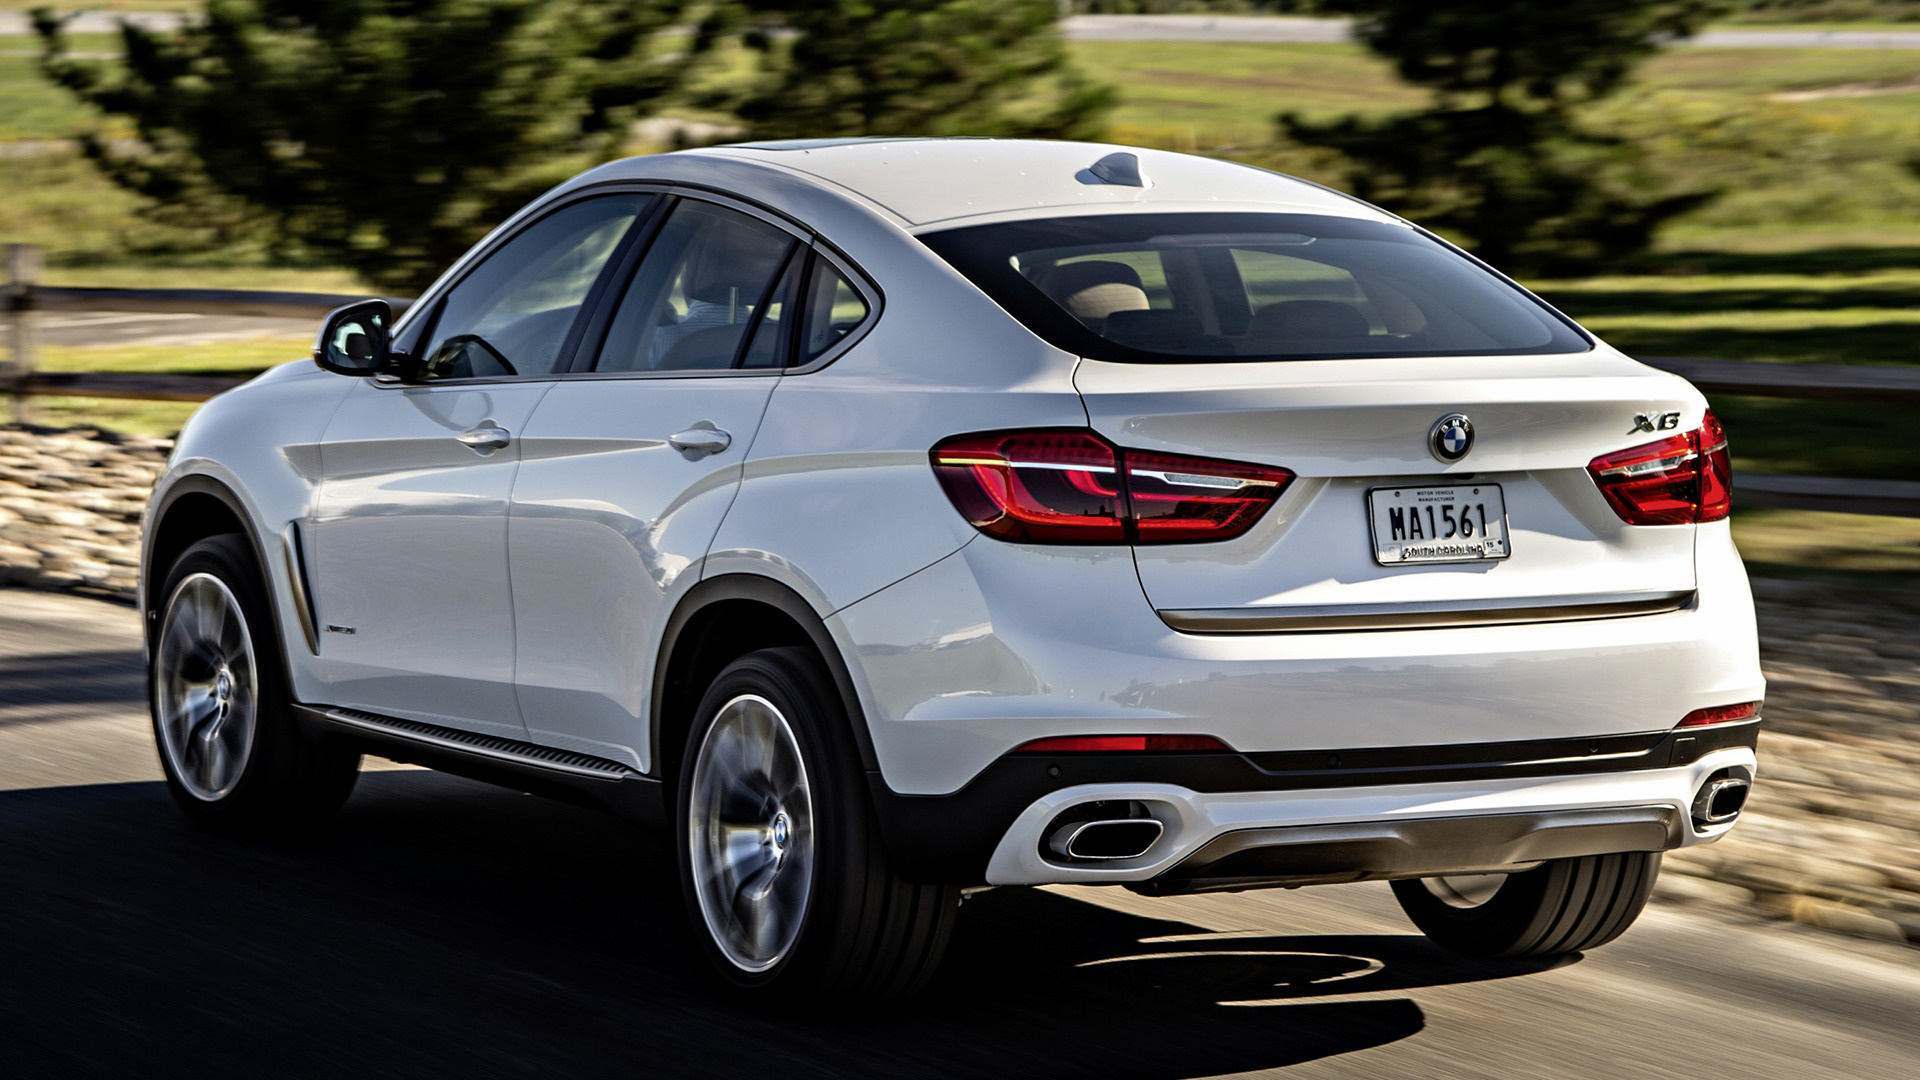 2014 BMW X6 - Wallpapers and HD Images | Car Pixel